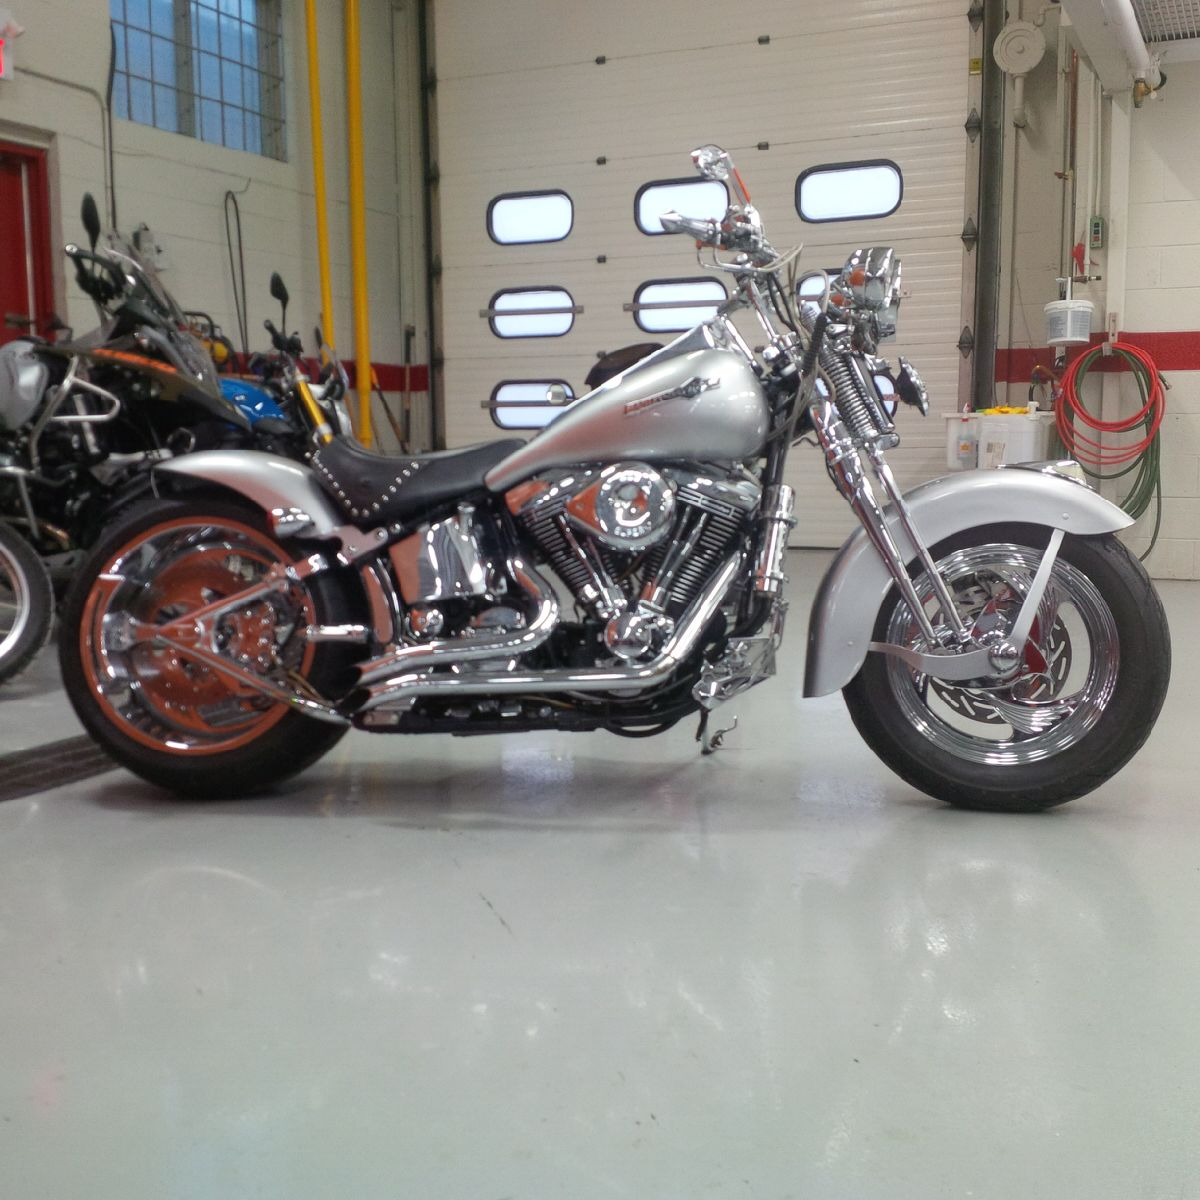 1995 Harley-Davidson Prices, Values Pictures - NADA guides 1965 springer harley pictures